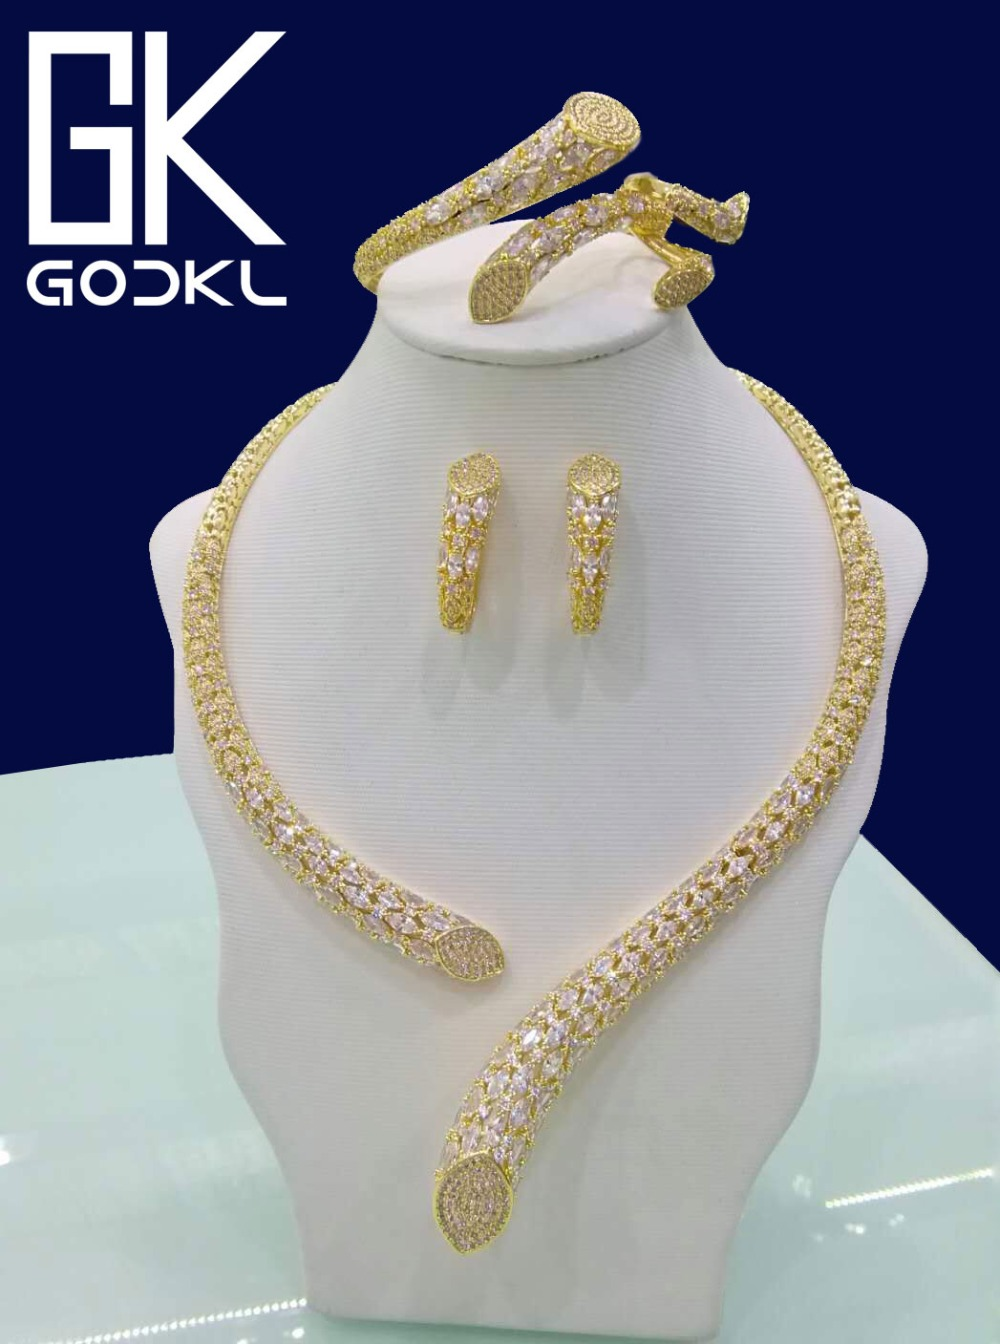 GODKI Luxury Geometry Cubic Zirconia Nigerian Jewelry sets For Women wedding Indian DUBAI Bridal Jewelry Set parure bijoux femme